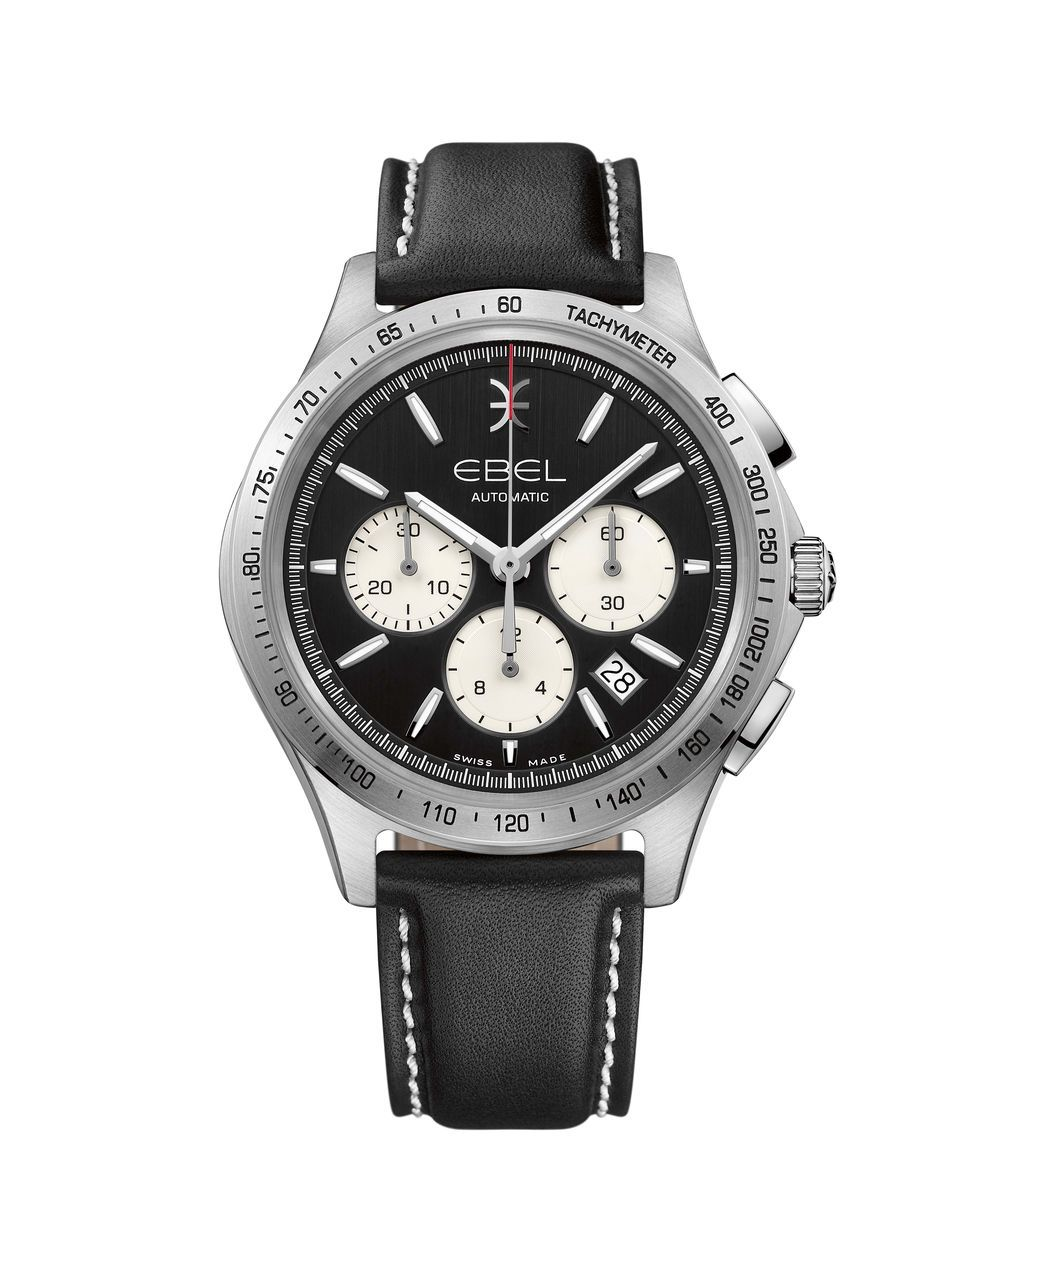 Author Chinua Achebe by Birth